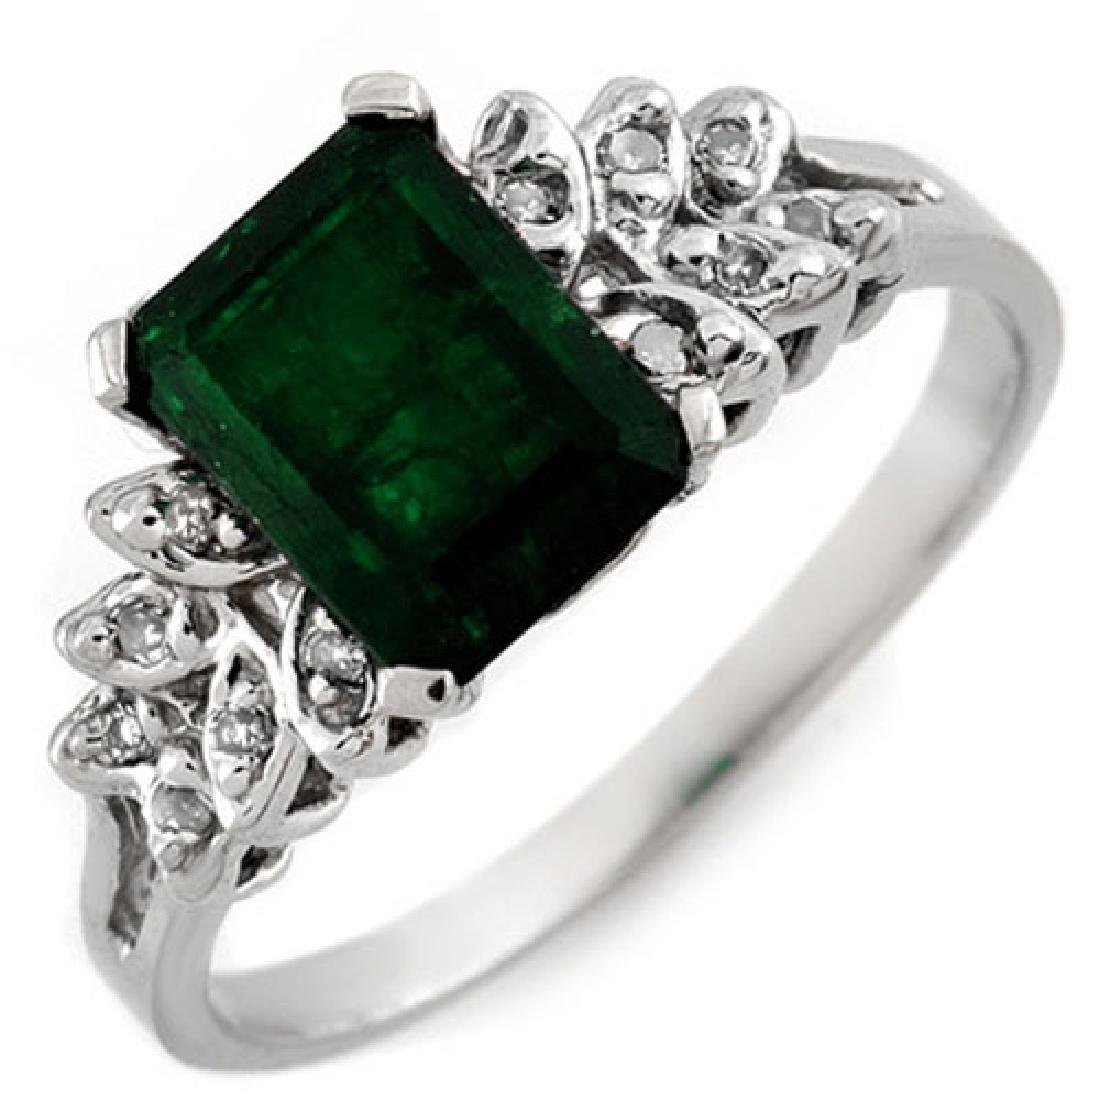 2.12 CTW Emerald & Diamond Ring 10K White Gold